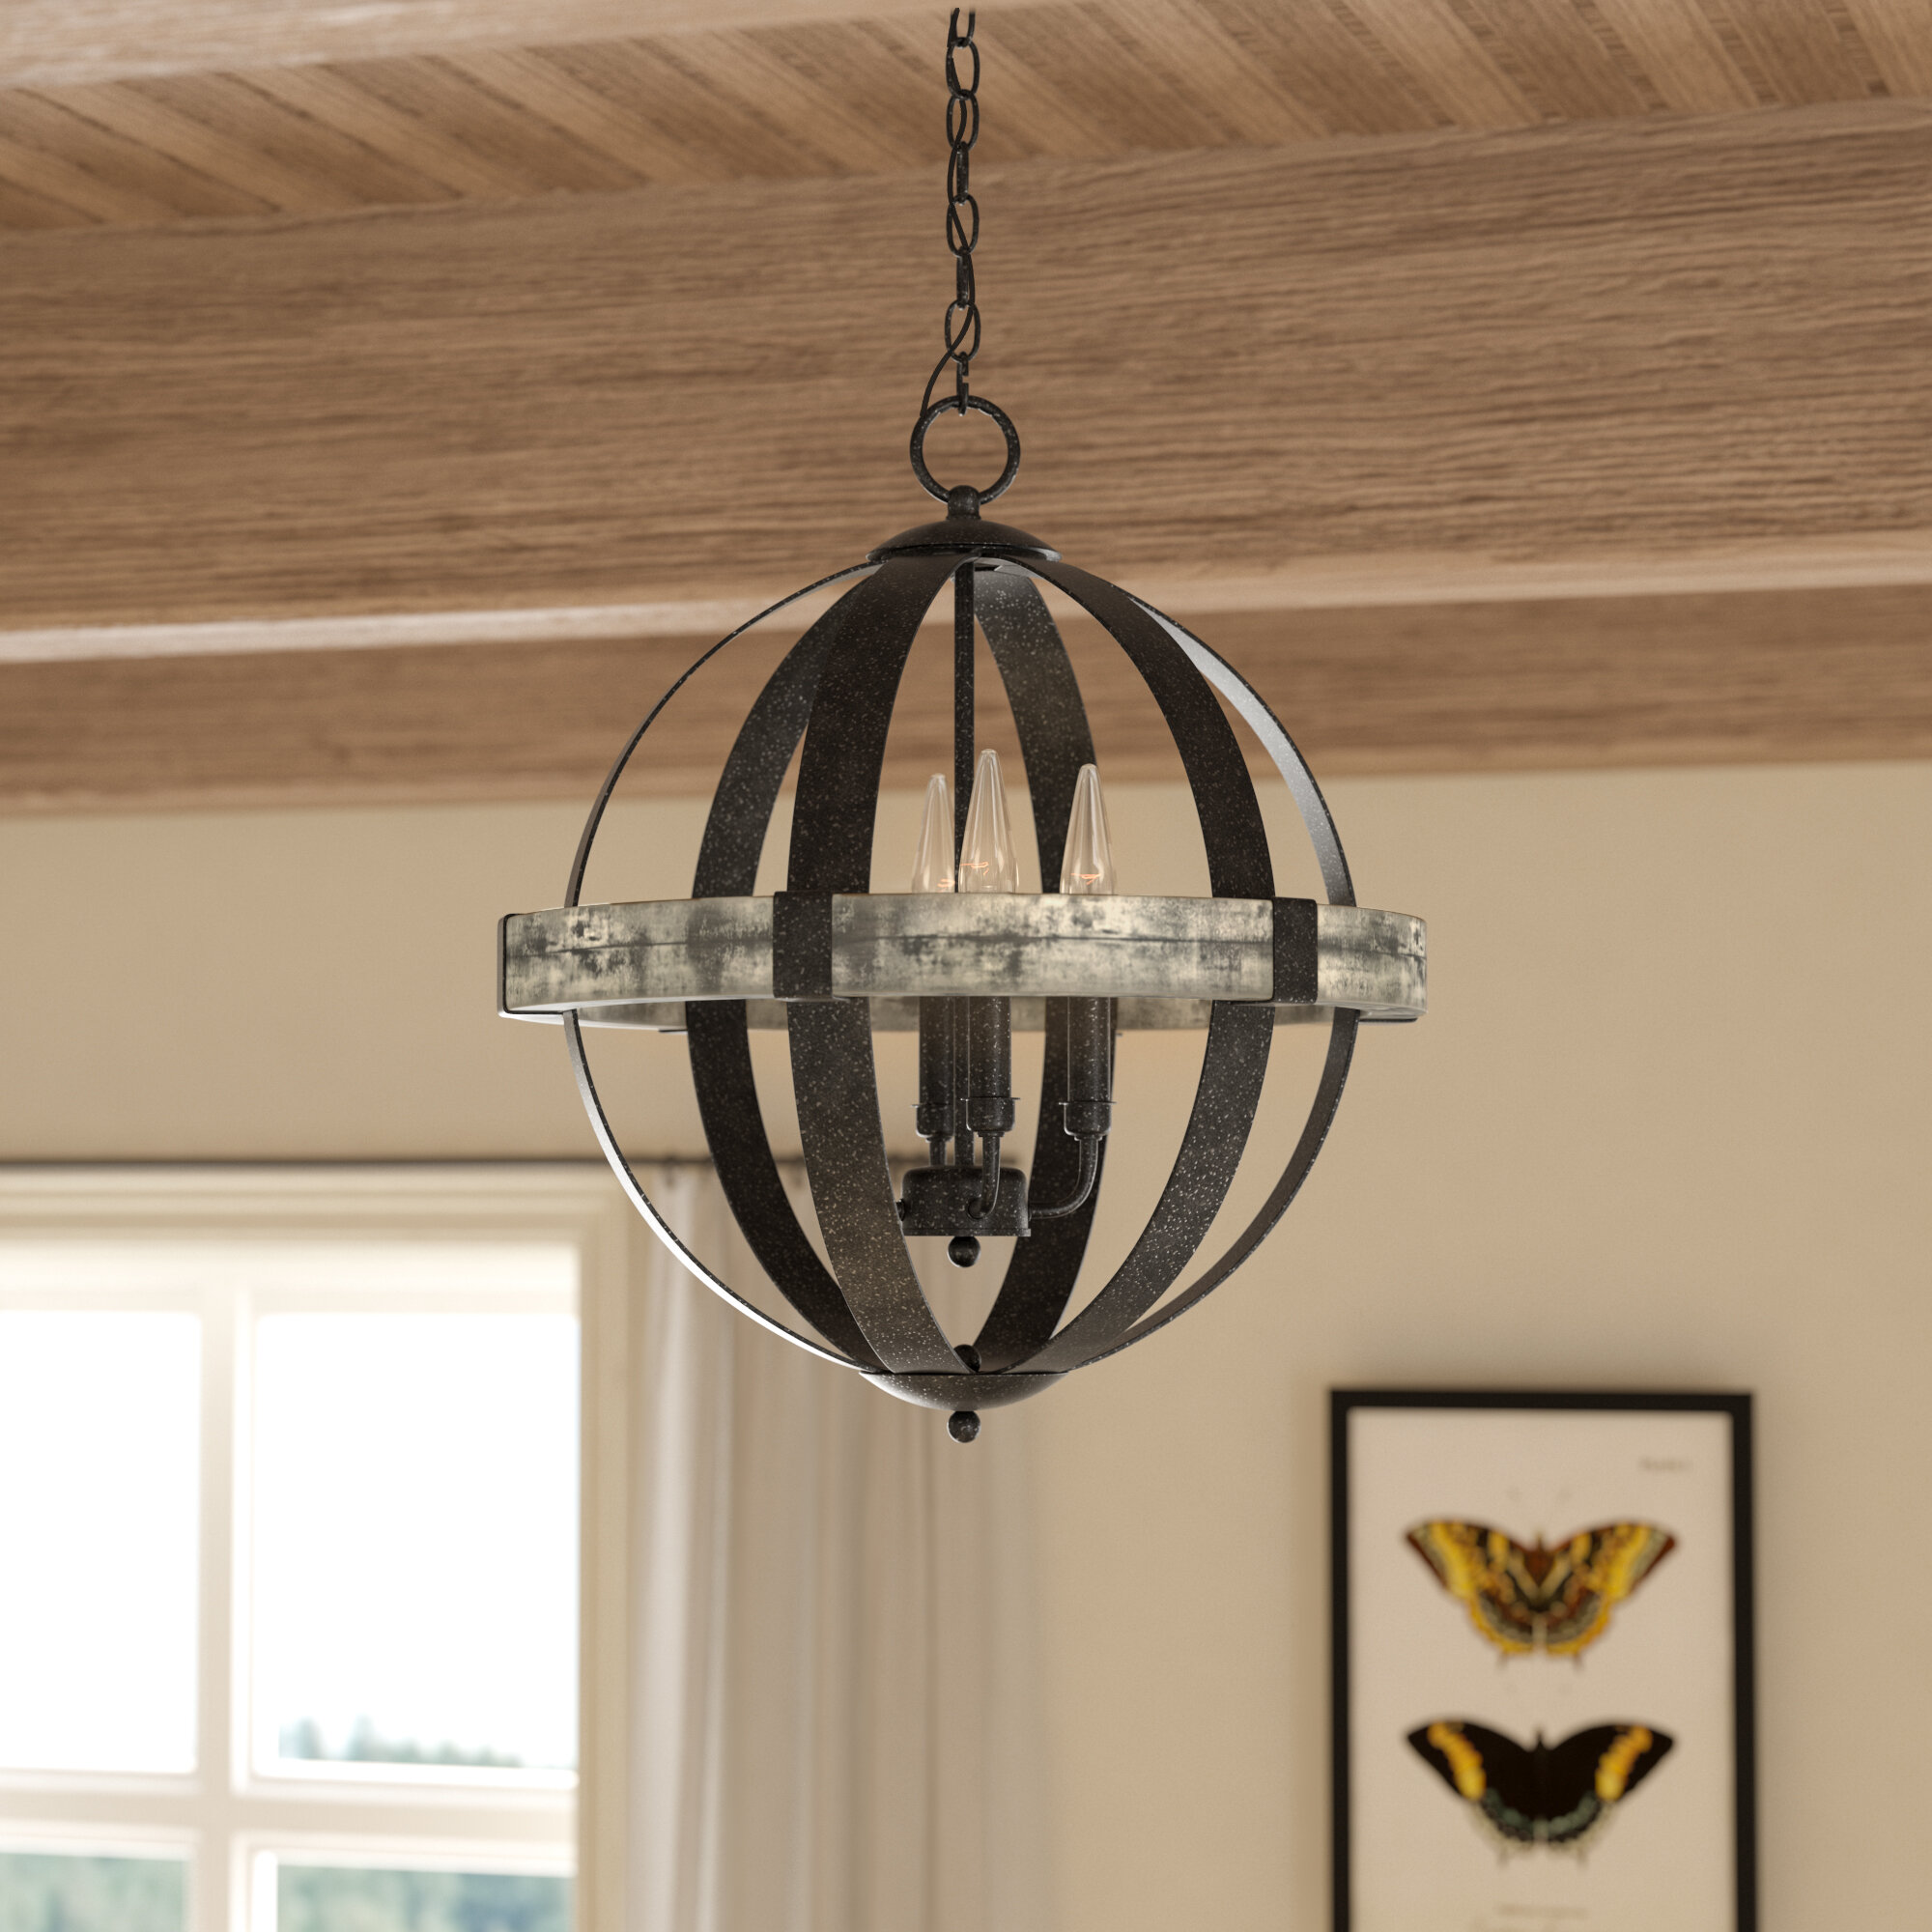 size lighting bronze full foyer ideas kit southern fixtures entryway with entry light placement traditional over chandelier island pendant chandeliers conversion